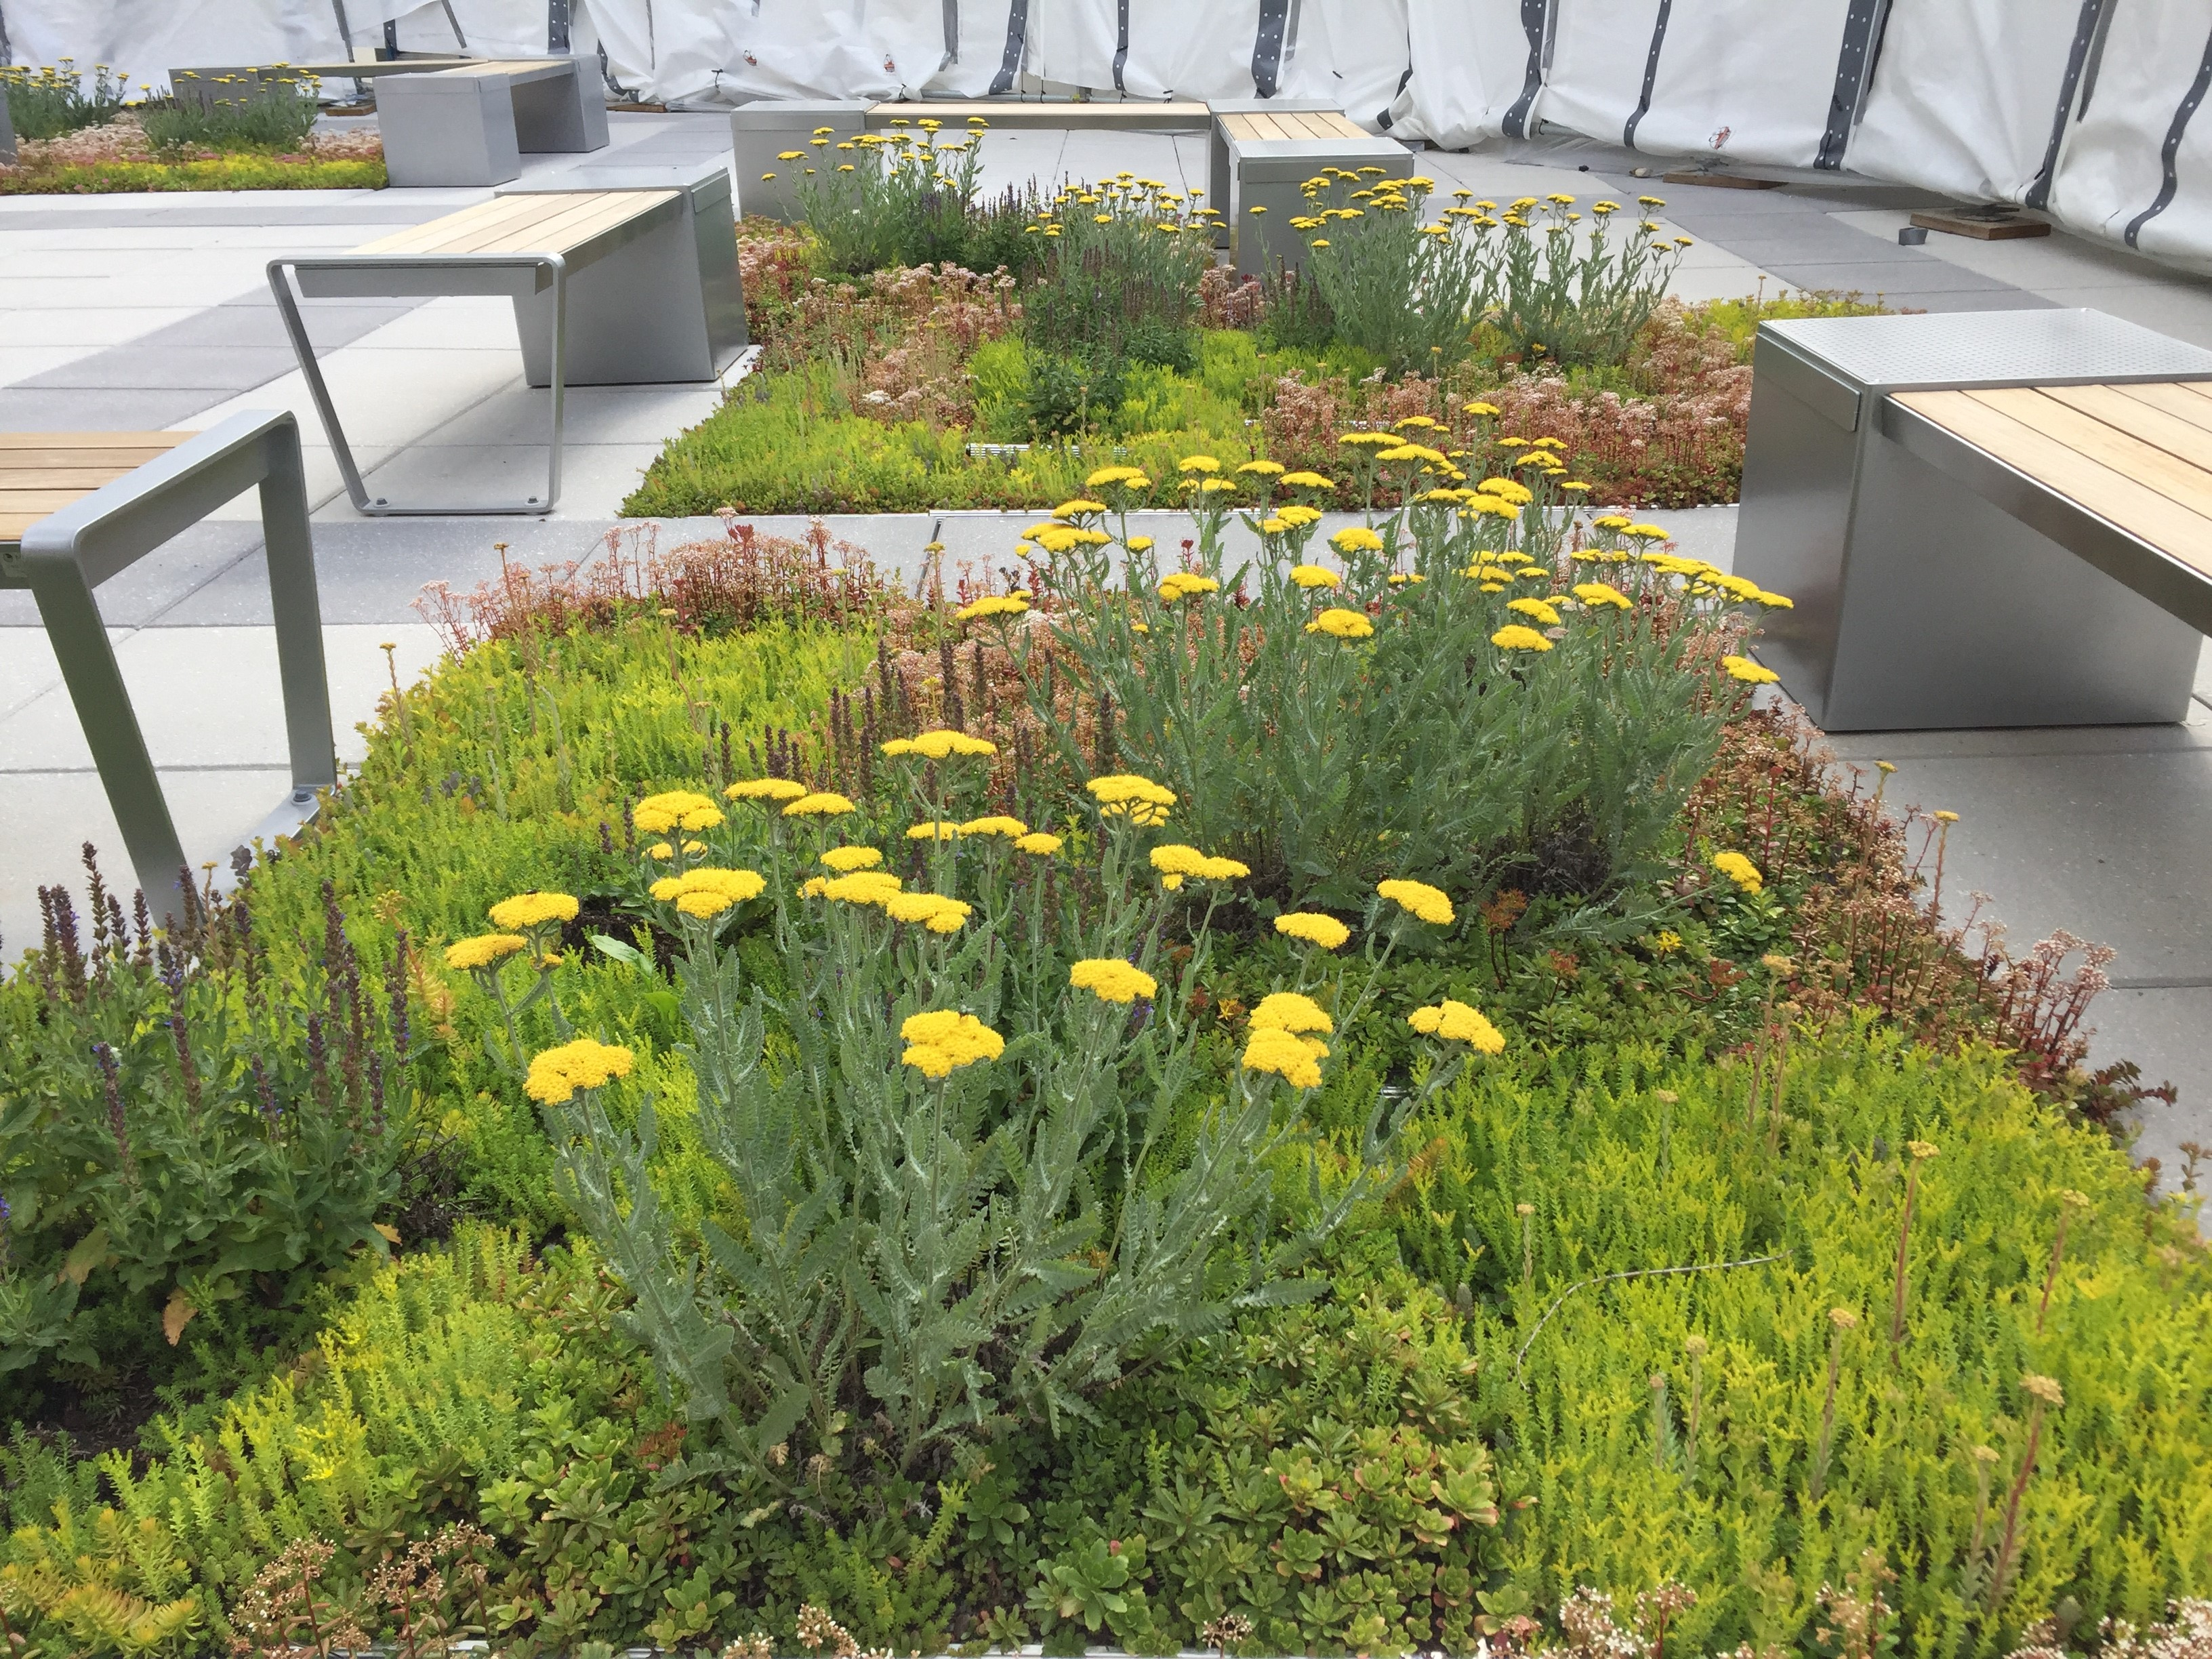 How to Install a Green Roof: A Guide For Property Managers